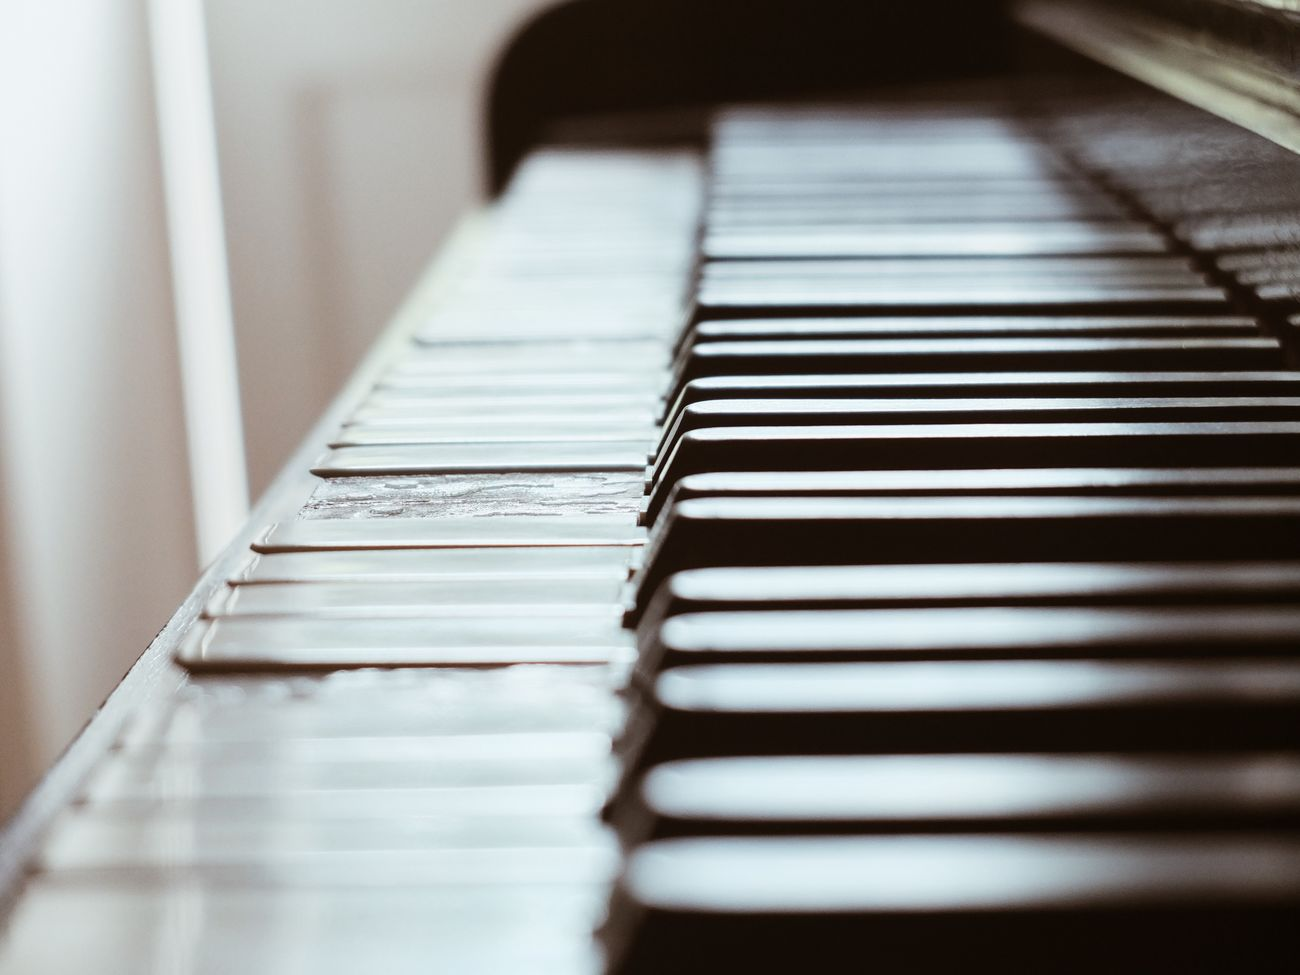 Beautiful stock photos of piano, Arts Culture And Entertainment, Close-Up, Home Interior, Indoors